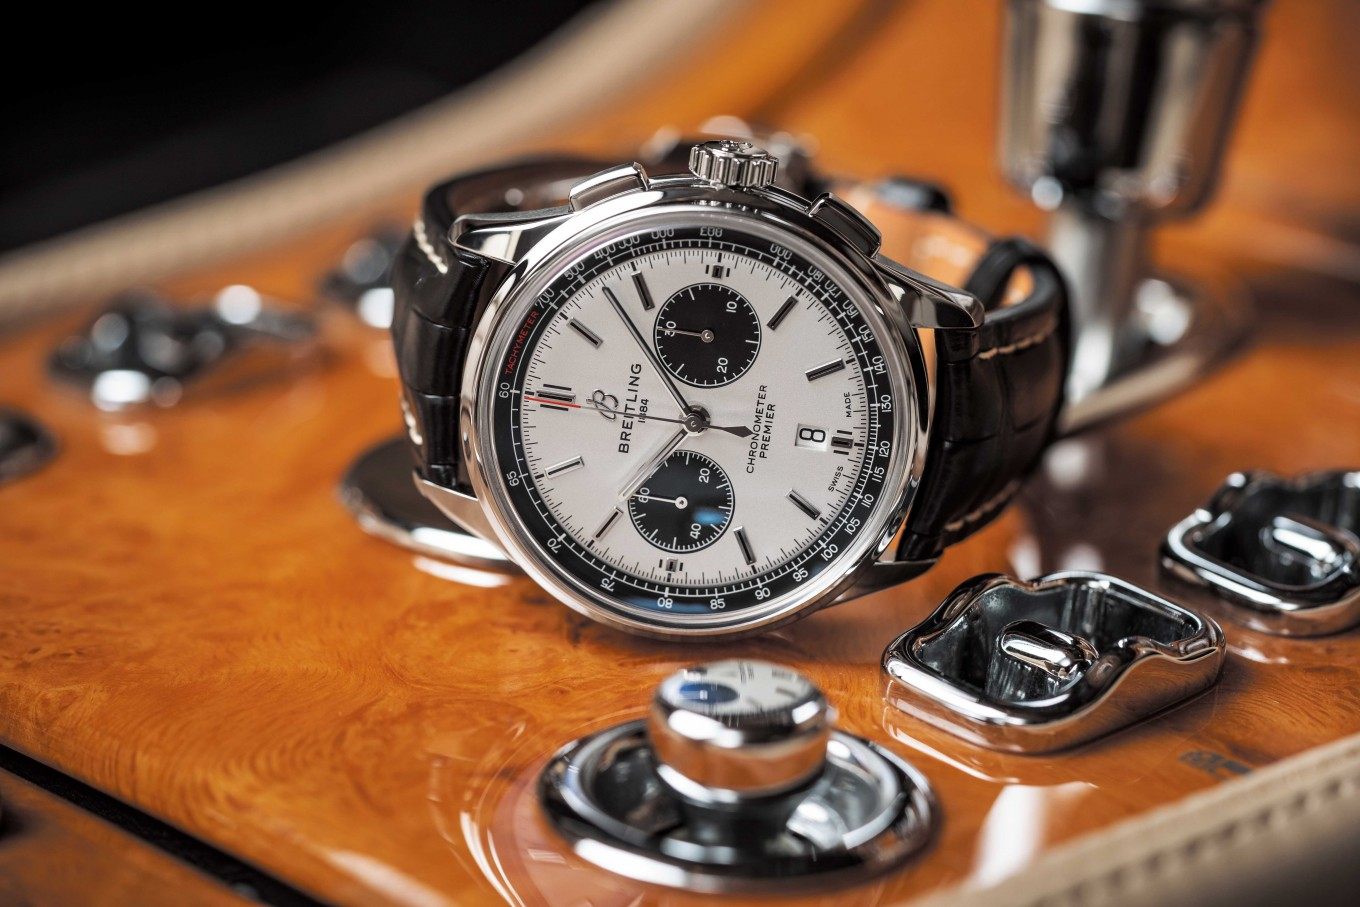 Breitling unveils new Premier line for everyday use